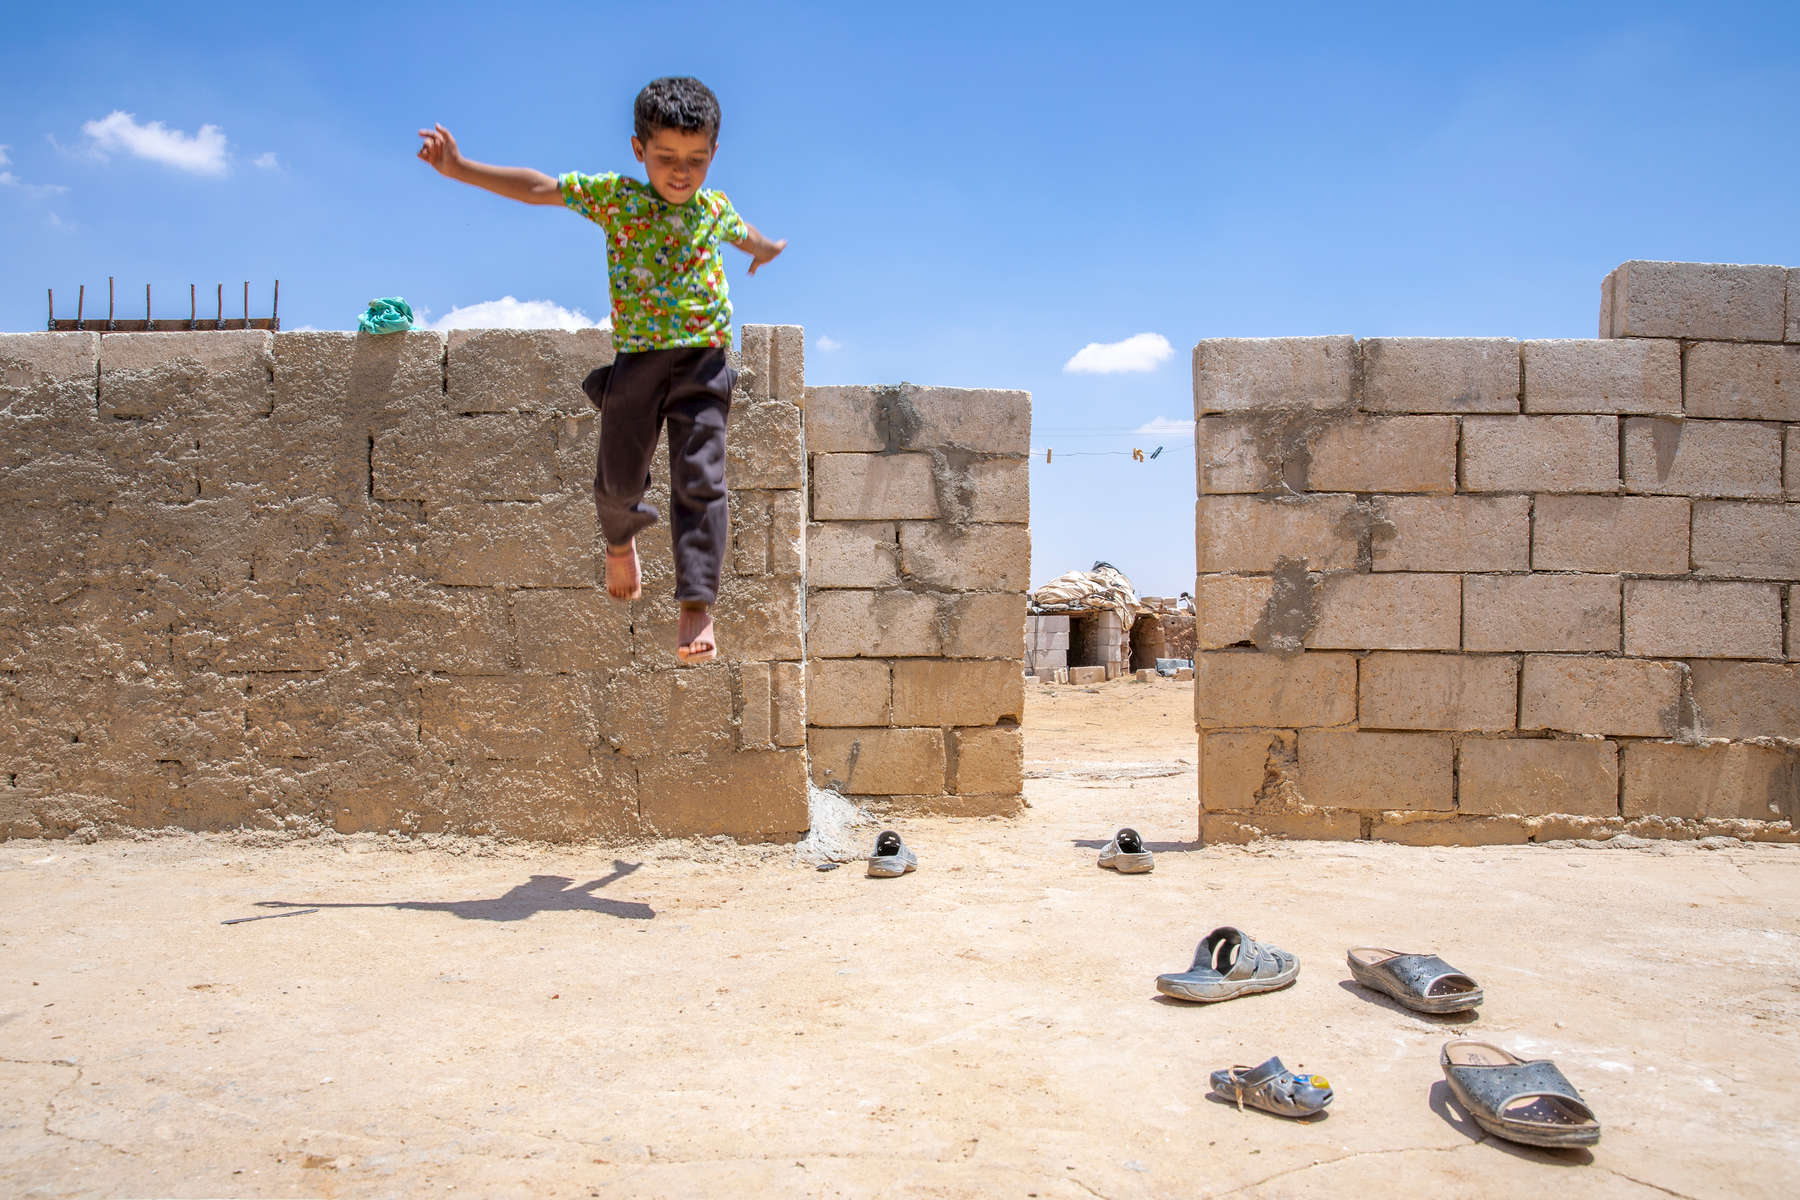 """Ahmad, 10, a Syrian refugee, plays on a wall next to his neighbor's family's goat pen. The neighbors are Maha, 34, and Mohammad, 39, and they are also Syrian refugees. Mohammad has worked on and off in Jordan for several years, but the war in Syria has made it his permanent home—his house in Syria has been burned down. When his wife followed as war closed in, she was placed in Jordan's Azraq camp but fled after a few weeks. Together, they struggle to provide for their five children, who are out of school.Maha and Mohammad were separated by the war for more than two years. When they reunited, their daughter, Alala, didn't recognize him. Today they live together in a small tent in Jordanian desert, trying to scrape together work until peace returns.A few of Maha and Mohammad's kids are old enough to remember when war broke out in their town. """"My daughter, when the plane came … she started to cry, because she saw, in front of us, the plane carrying out massacres of innocent people,"""" Maha says. In Syria, Mohammad and Maha were small farmers raising their kids in peace. But since war forced them from home, now they live as refugees, struggling to cope with what their family has been through. """"I swear that when the night comes, and we hear the sound of planes, my body starts to shake out of fear for my sons,"""" Maha says.Mercy Corps connected the family to mobile banking, which they use to pay bills and save money on their phones. Their dream today is to continue on to Europe where their kids can continue their educations and live in peace. """"I've suffered,"""" Mohammad says. """"I don't want them to suffer like me."""""""